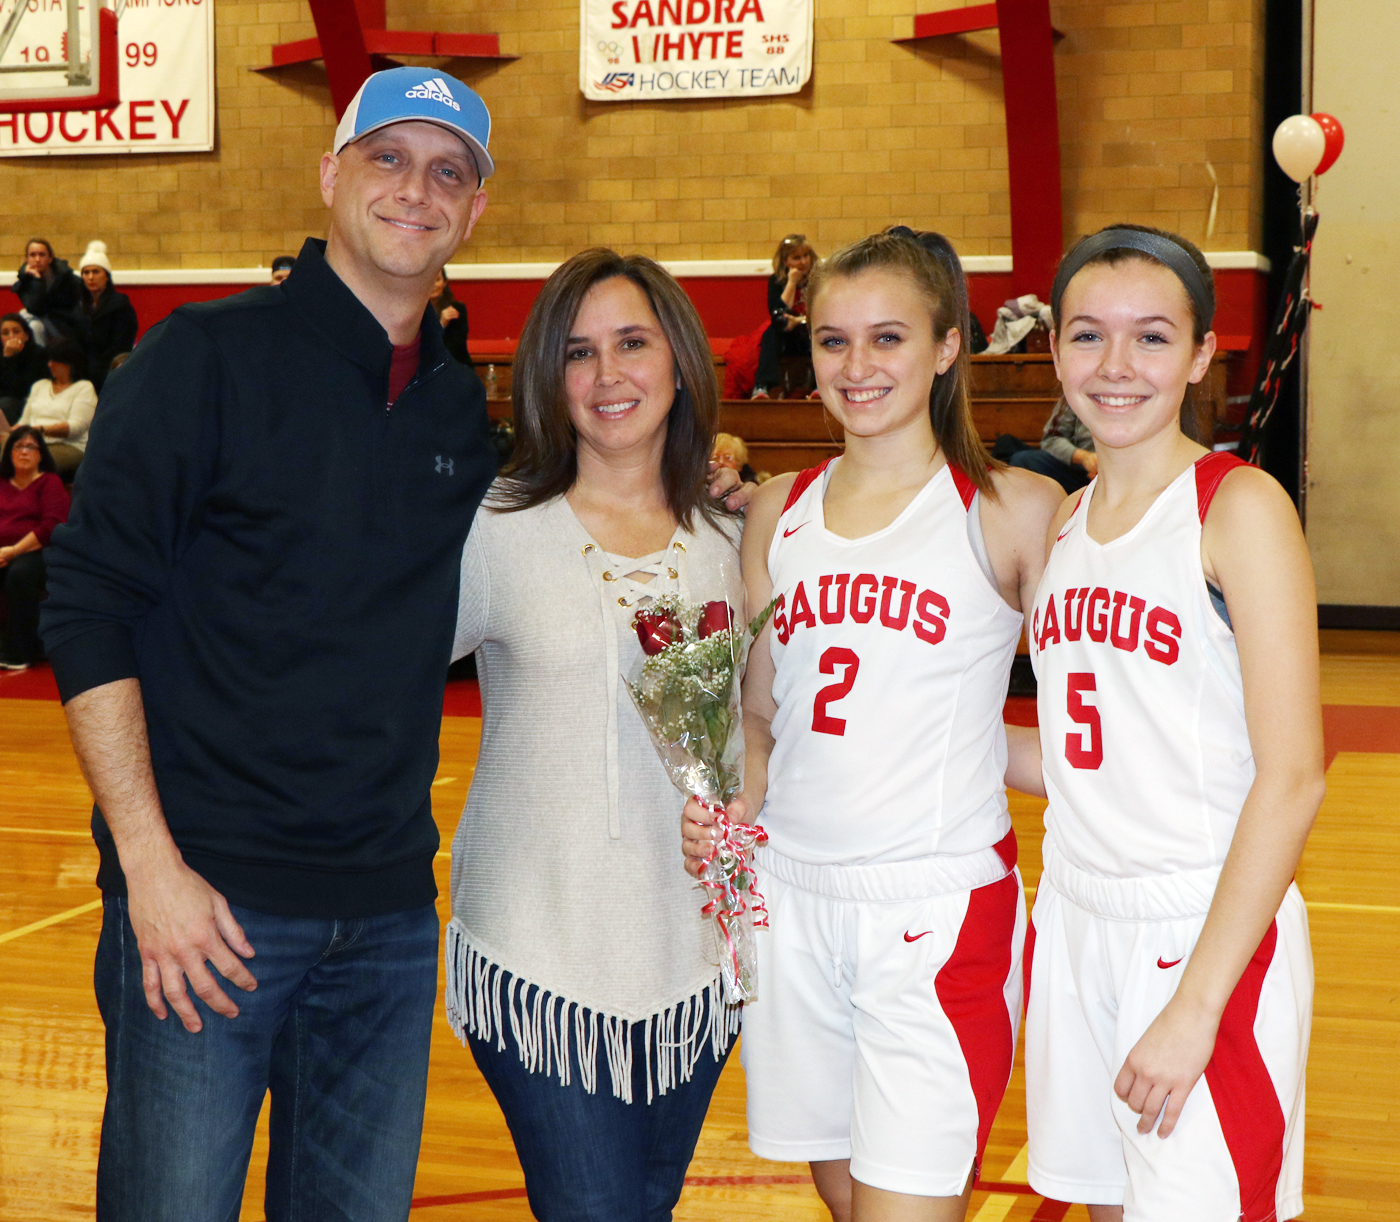 Captain Rachel Nazzaro with her parents, Melissa and Mark and sister/teammate #5 Jessica.